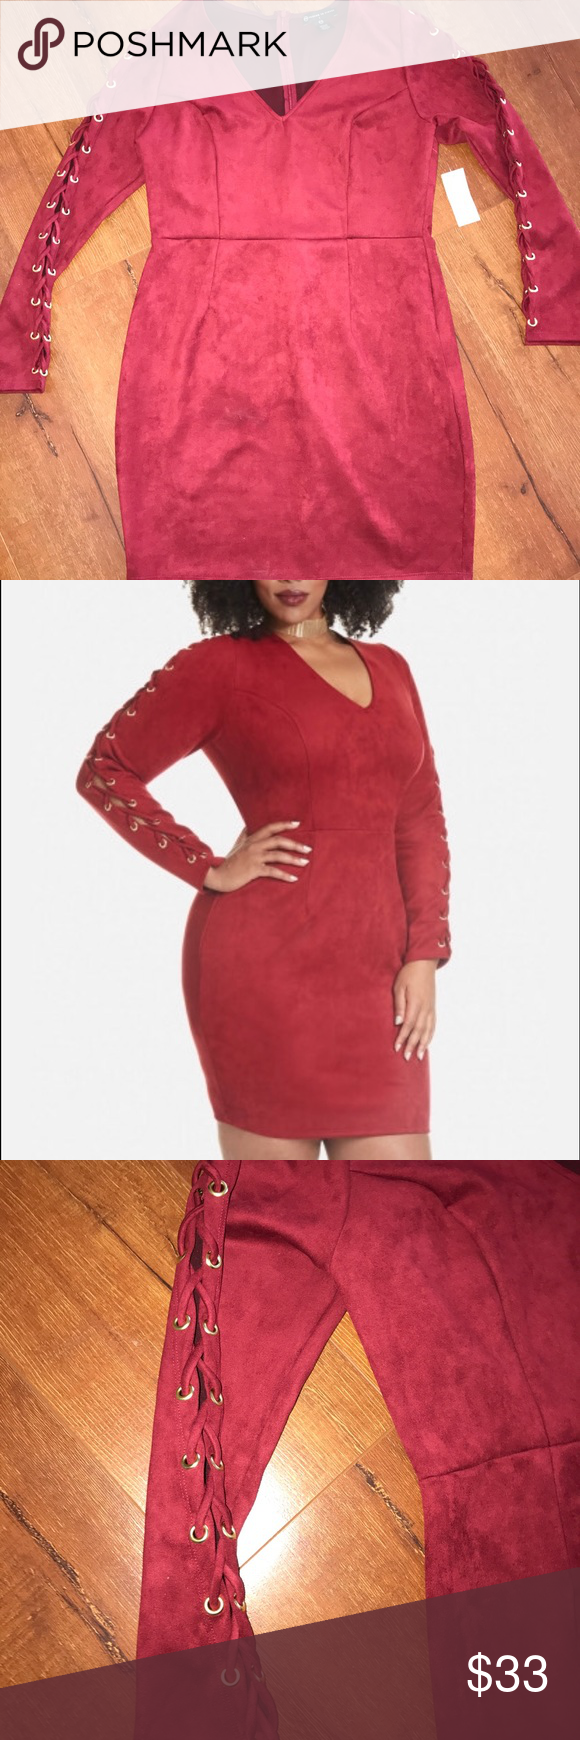 Lace dress torrid  Plus size Suede Laceup Dress  Torrid Arms and Minis